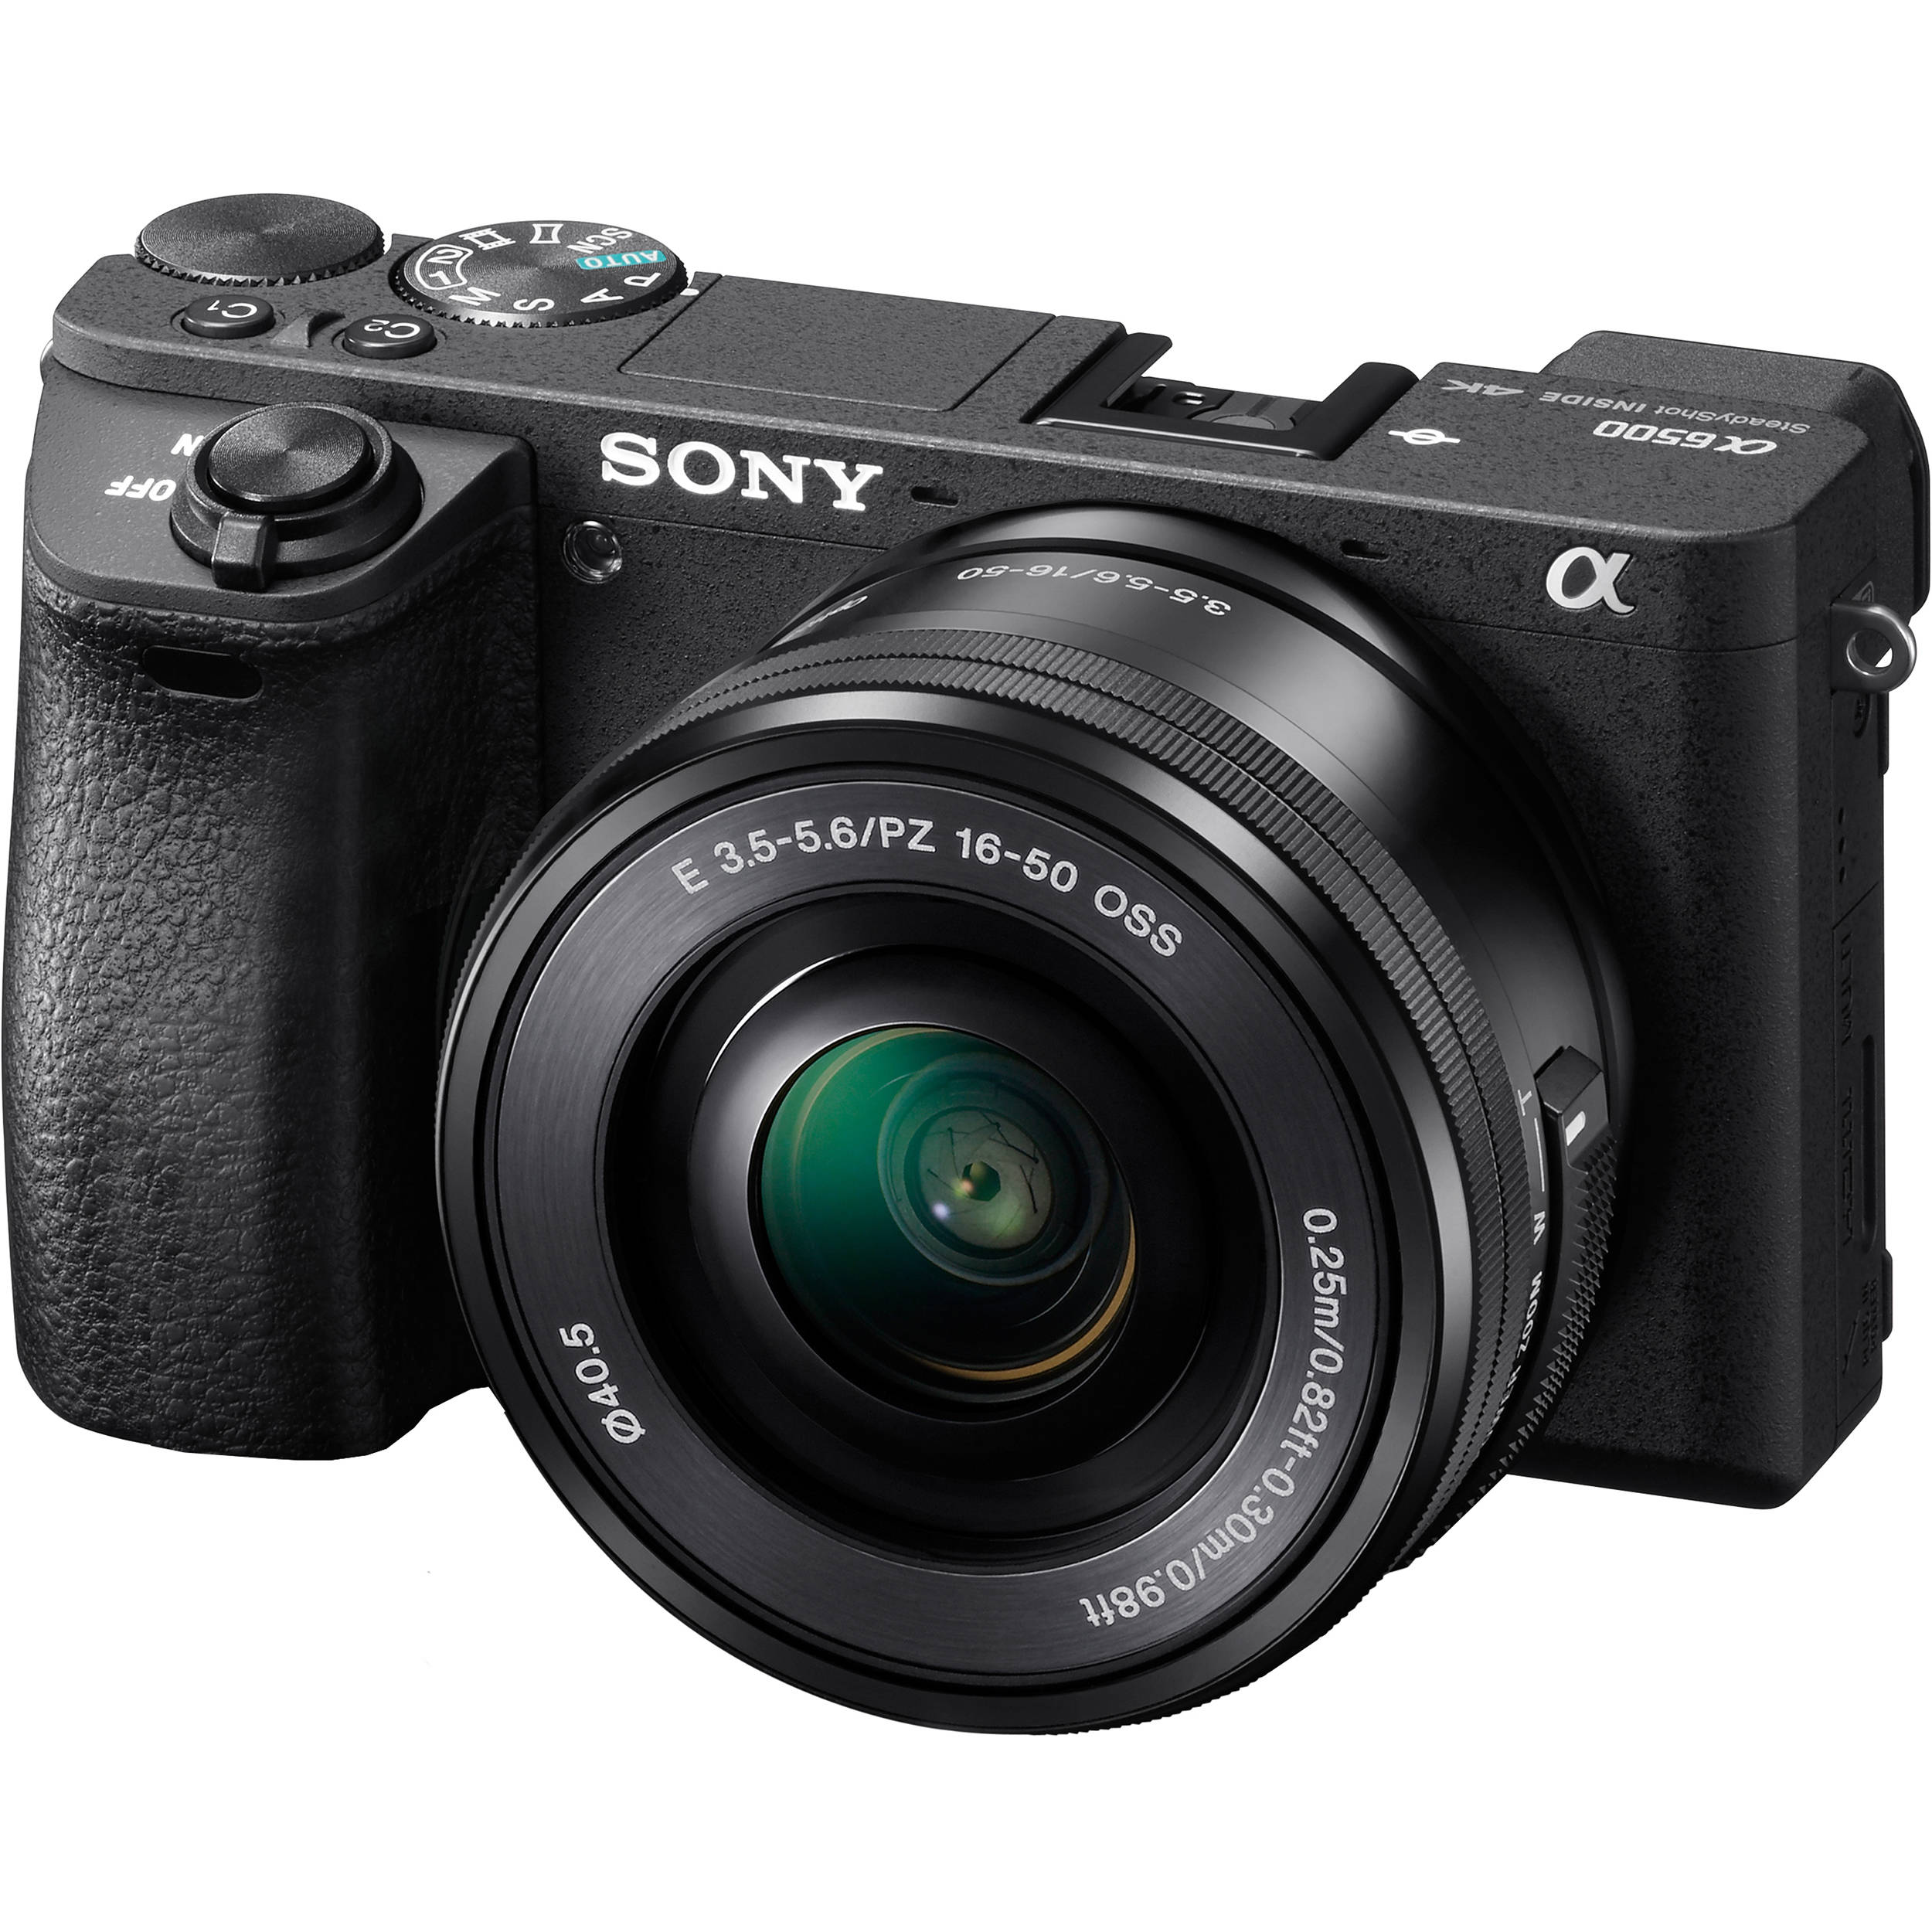 sonys mirrirless camera Once you buy a sony camera, you'll never take photos on your  the full- frame sony a7r iii is the best mirrorless camera you can buy.